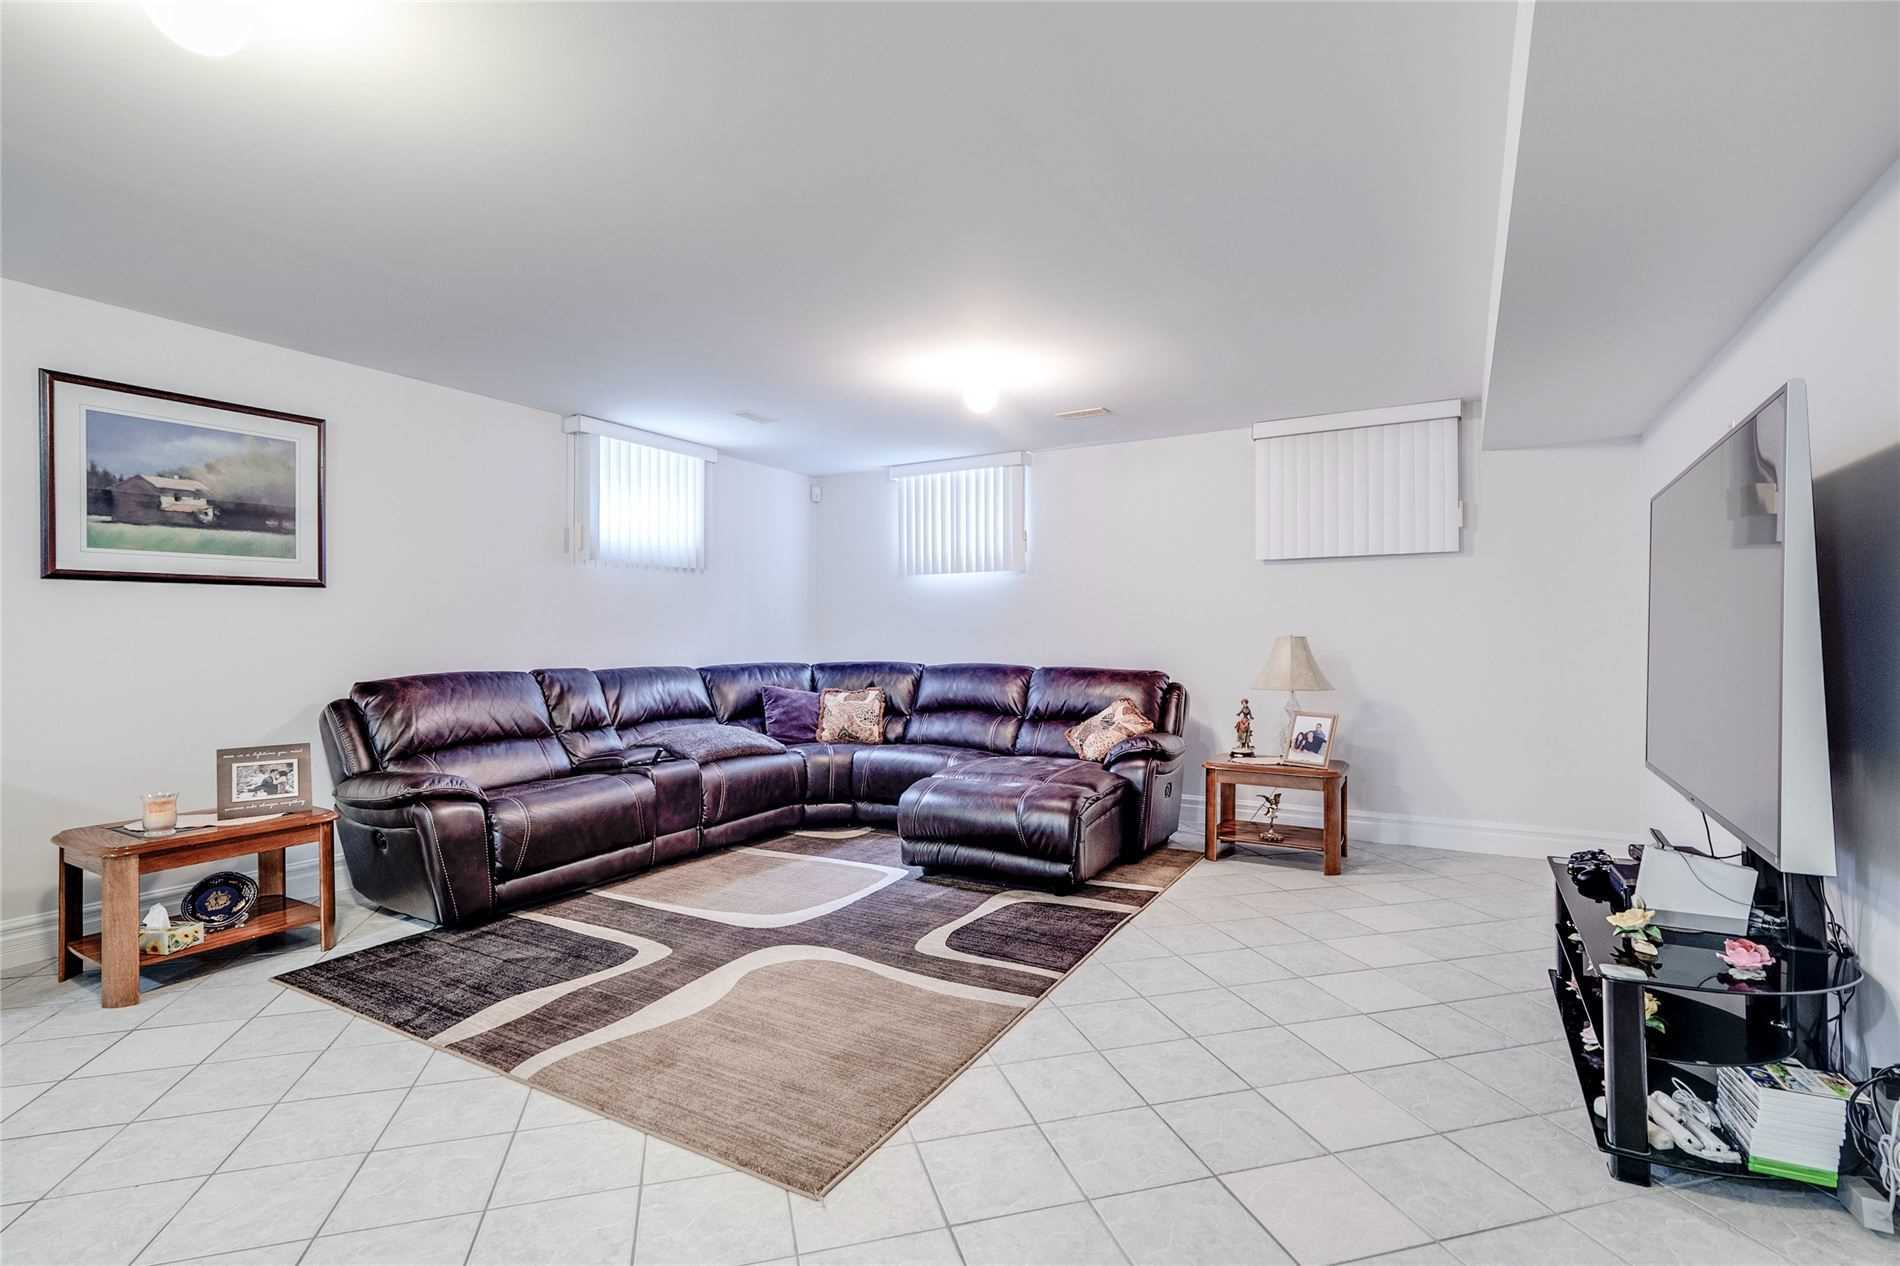 68 Sellers Ave (8)